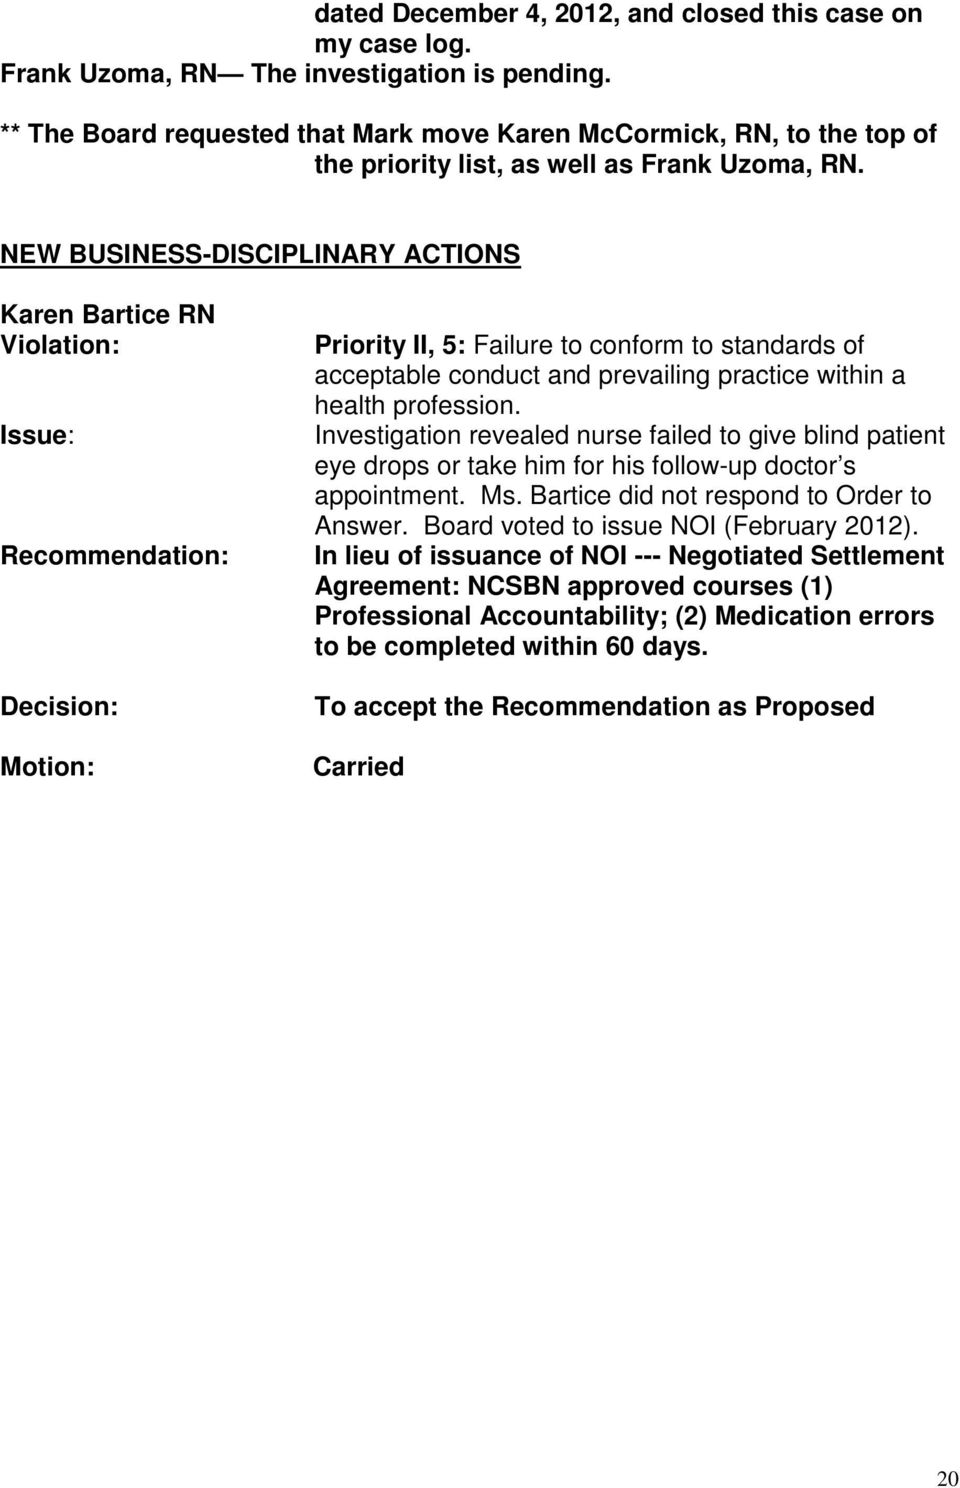 NEW BUSINESS-DISCIPLINARY ACTIONS Karen Bartice RN Violation: Recommendation: Motion: Priority II, 5: Failure to conform to standards of acceptable conduct and prevailing practice within a health